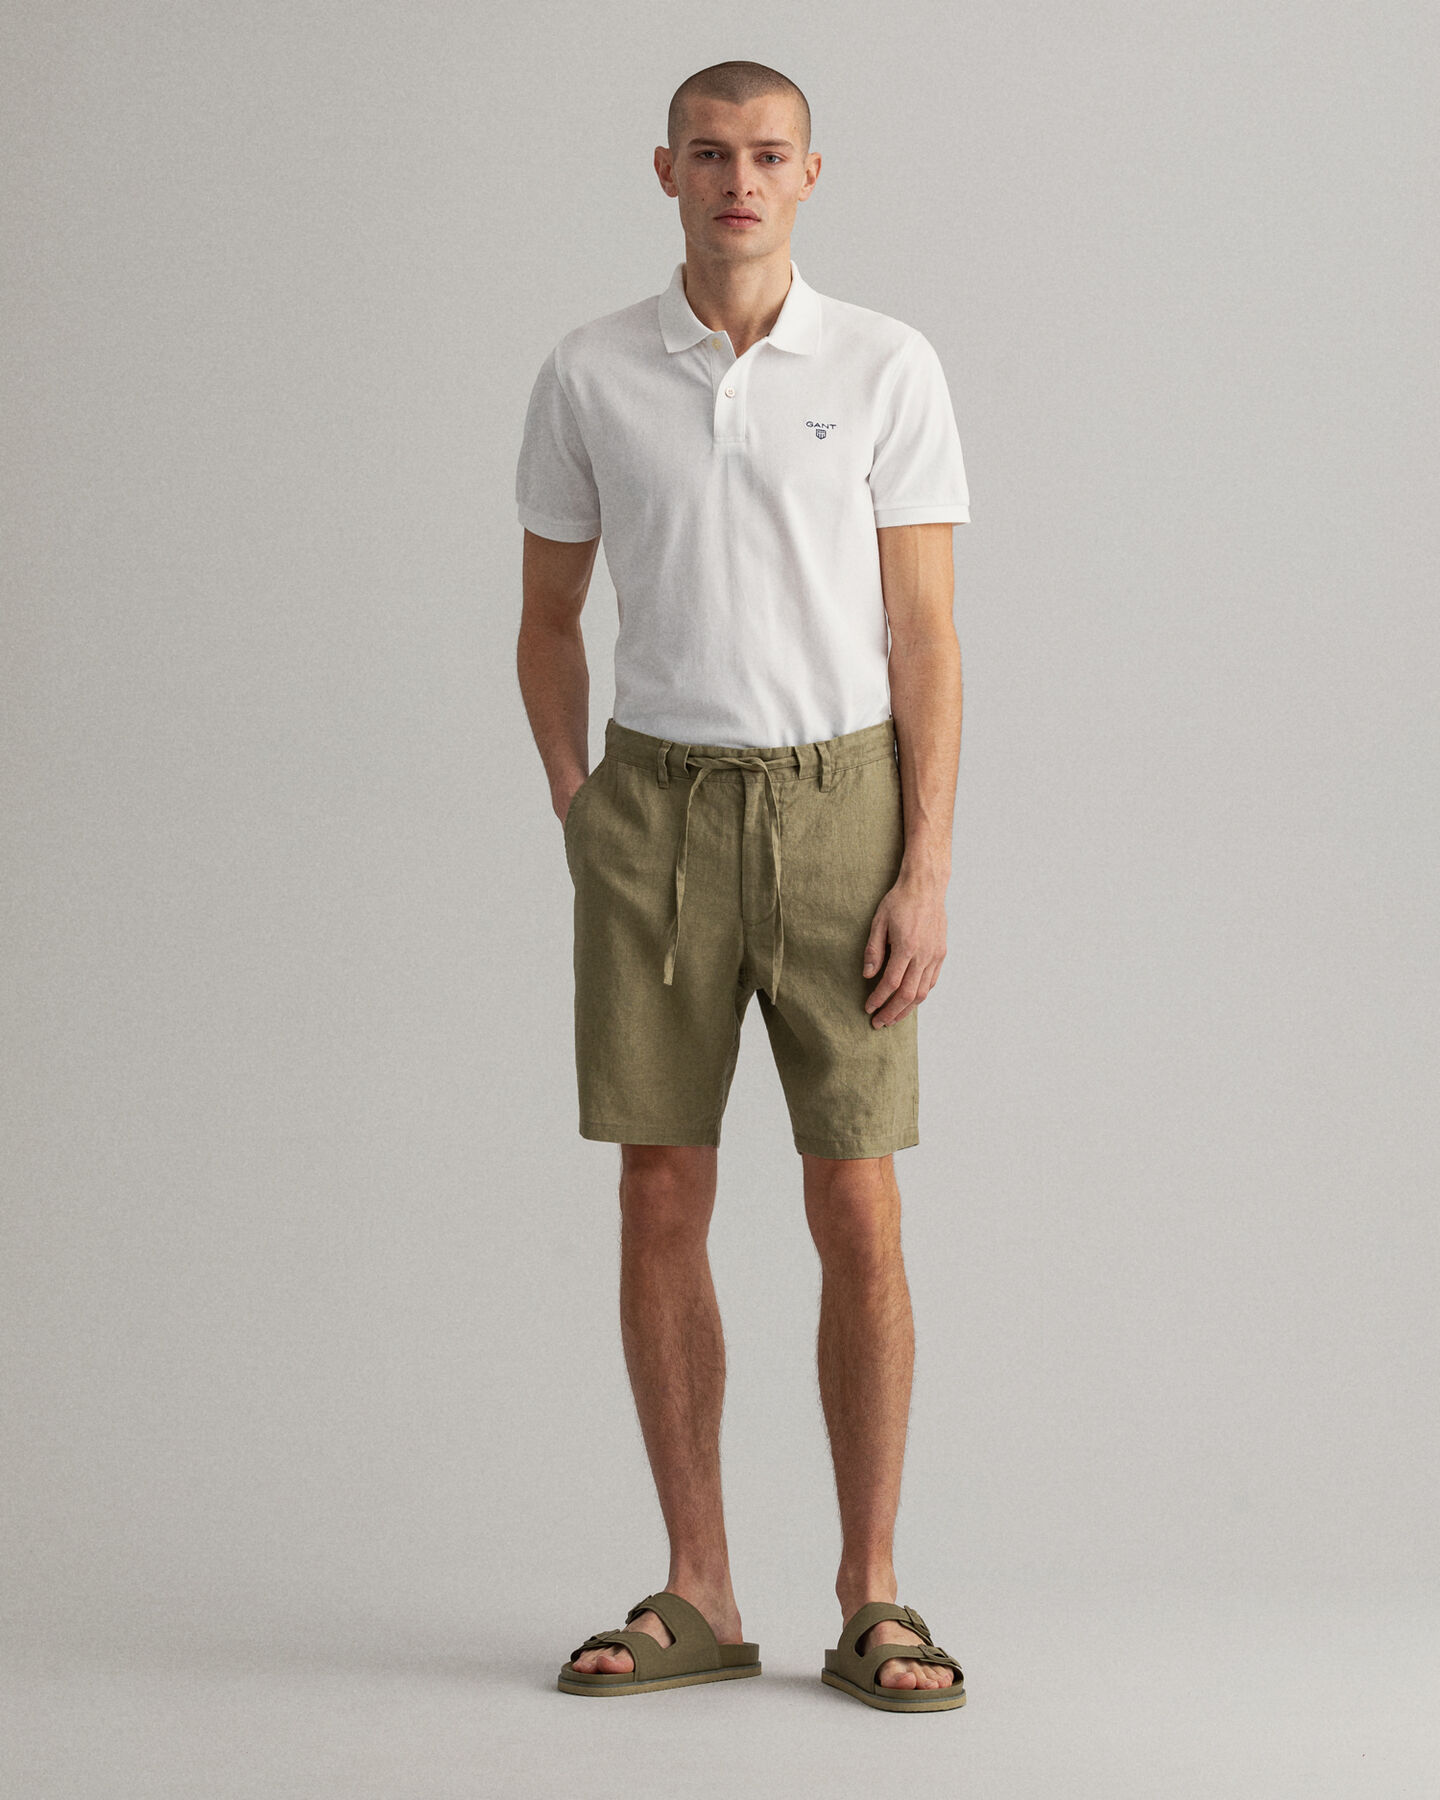 Relaxed Fit Leinen Shorts mit Kordelzug